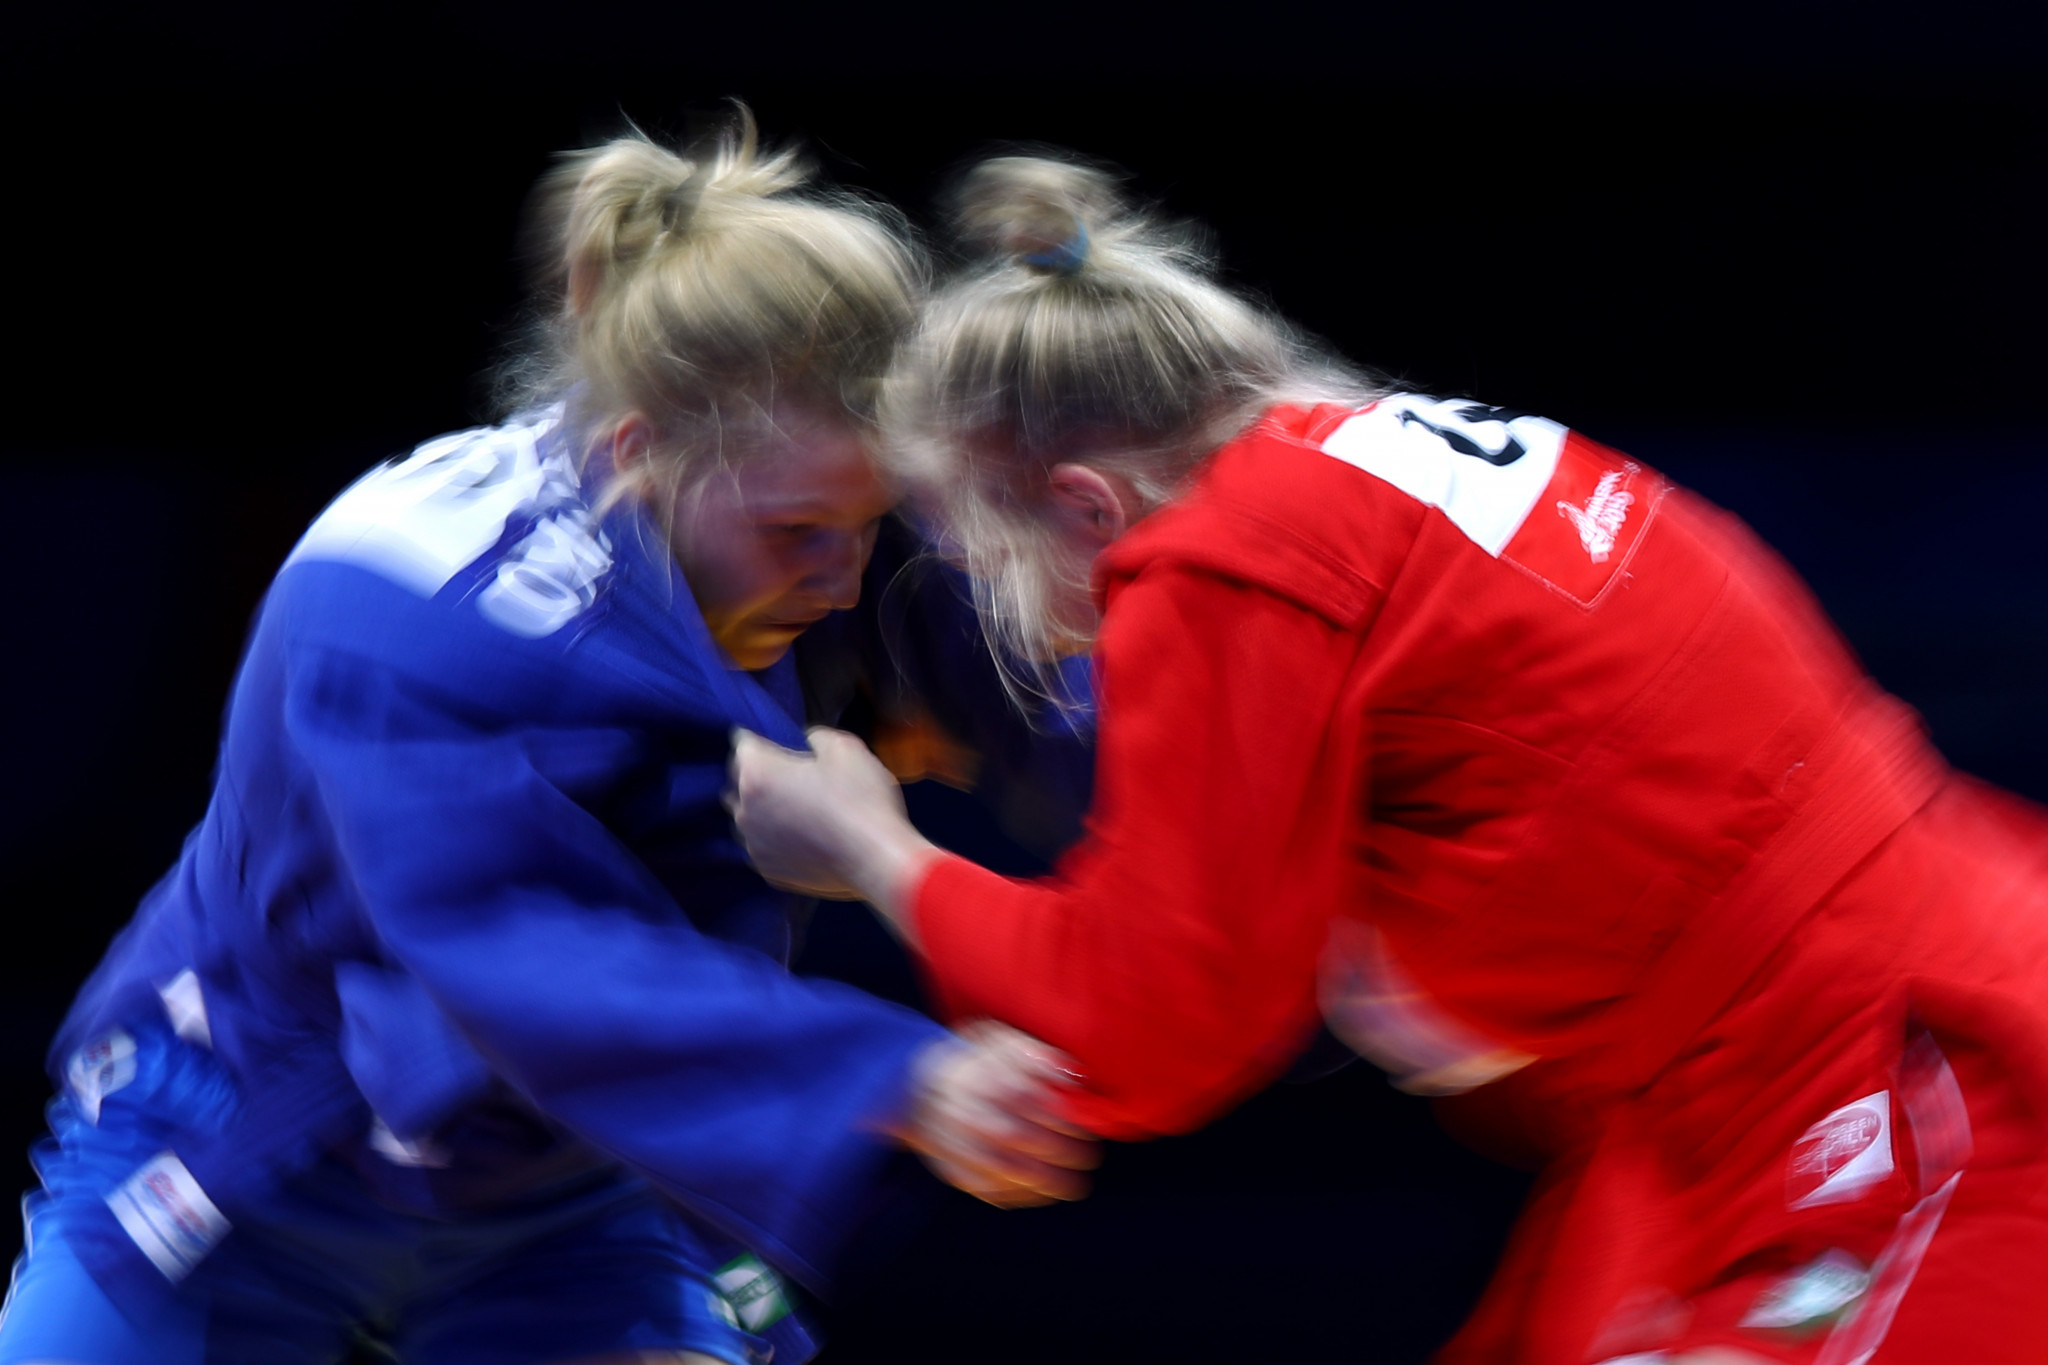 The International Sambo Federation is working towards greater gender equality ©Getty Images